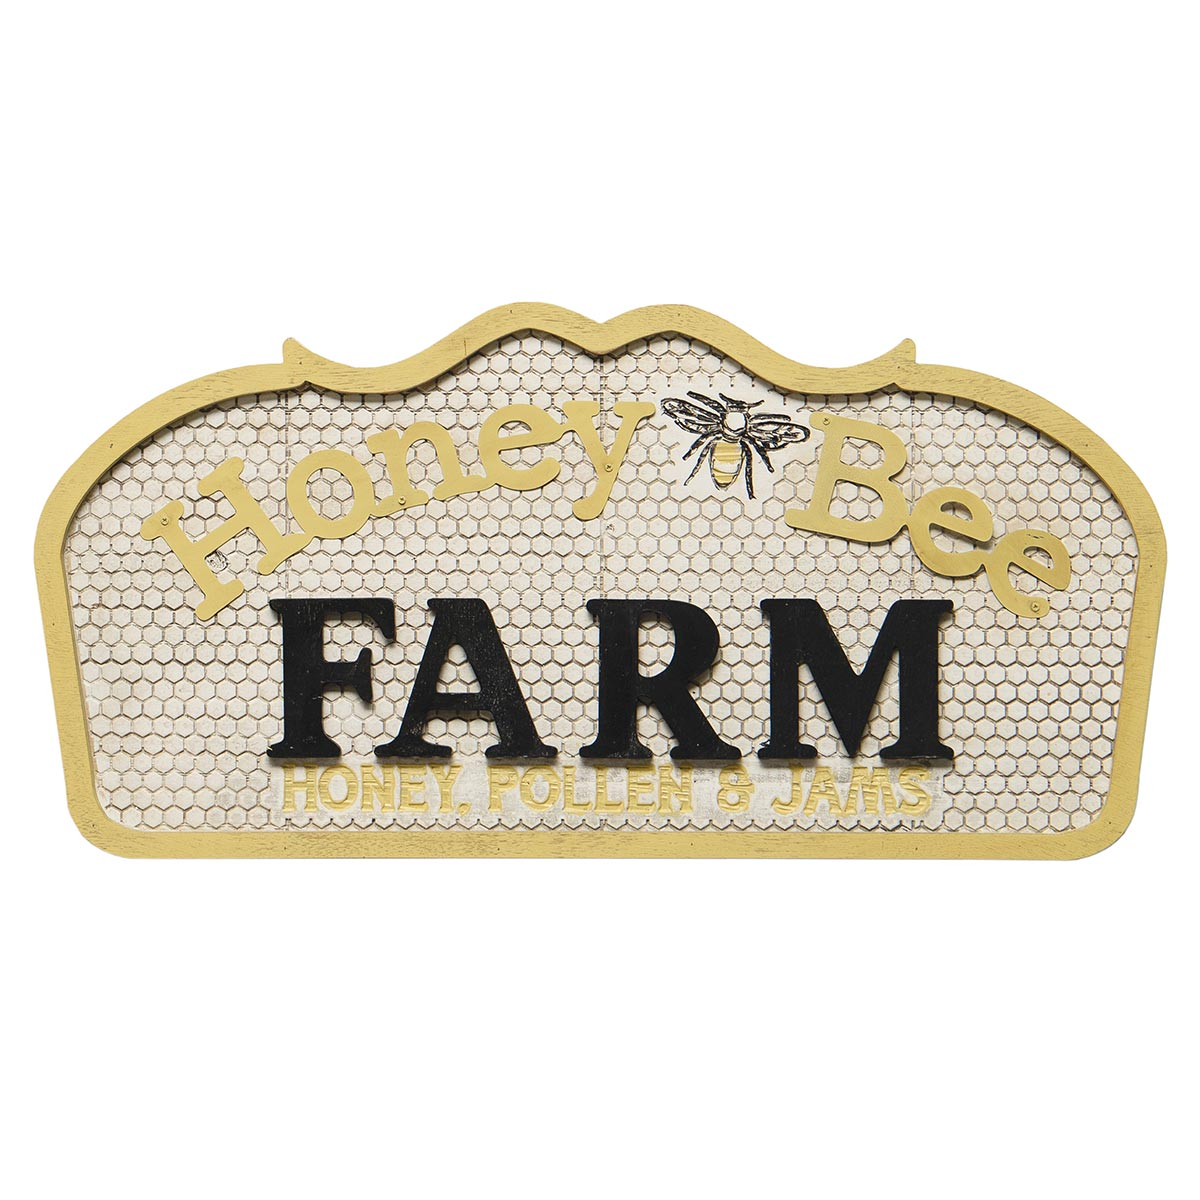 HONEY BEE FARM HONEY POLLEN & JAMS WOOD & METAL SIGN YELLOW,